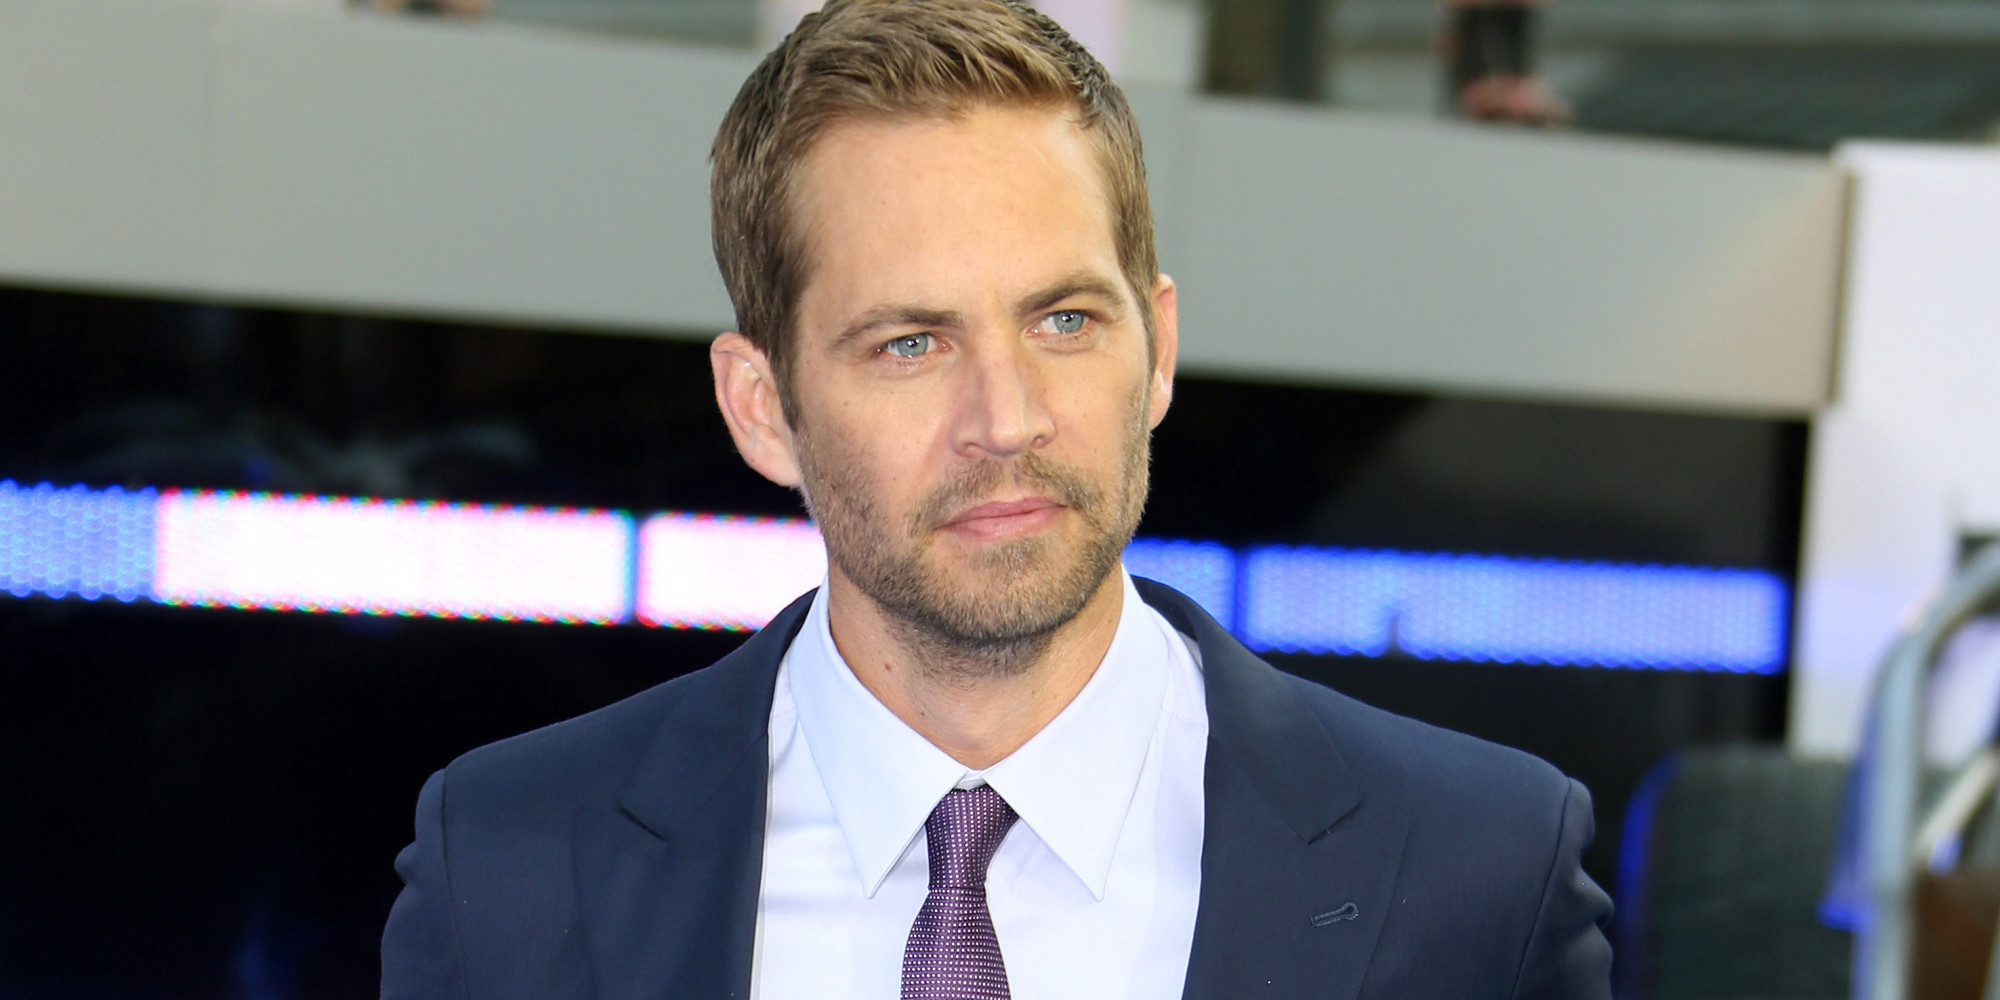 paul walker s memory comes to life in see you again song covers paul walker s memory comes to life in see you again song covers farzana hassan